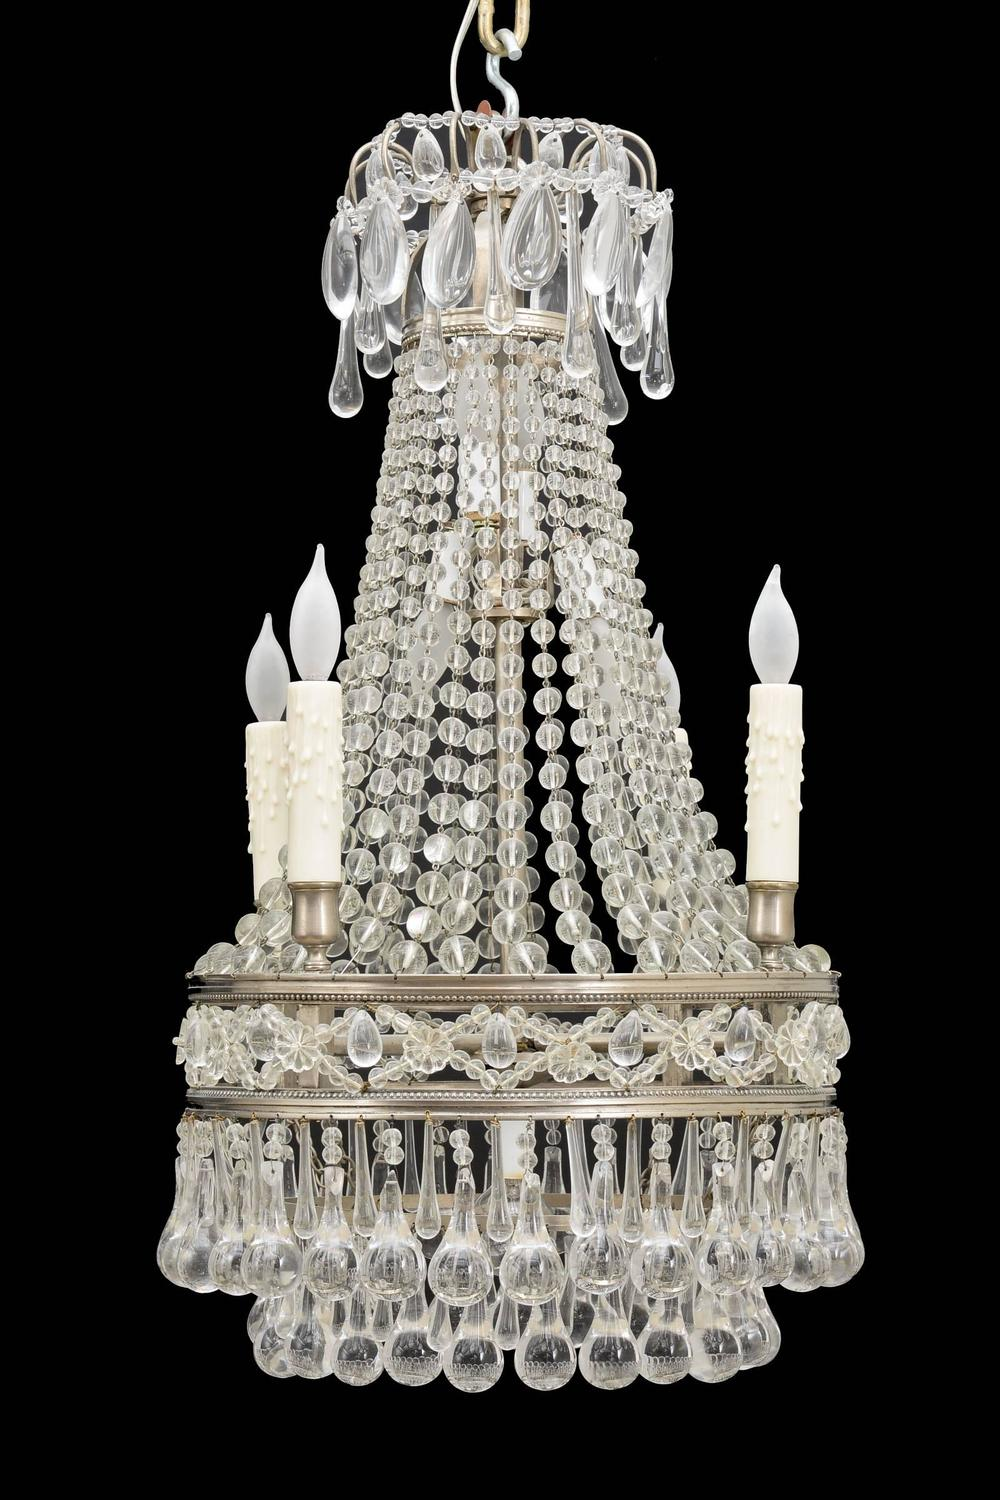 French Antique Crystal Chandelier For Sale at 1stdibs